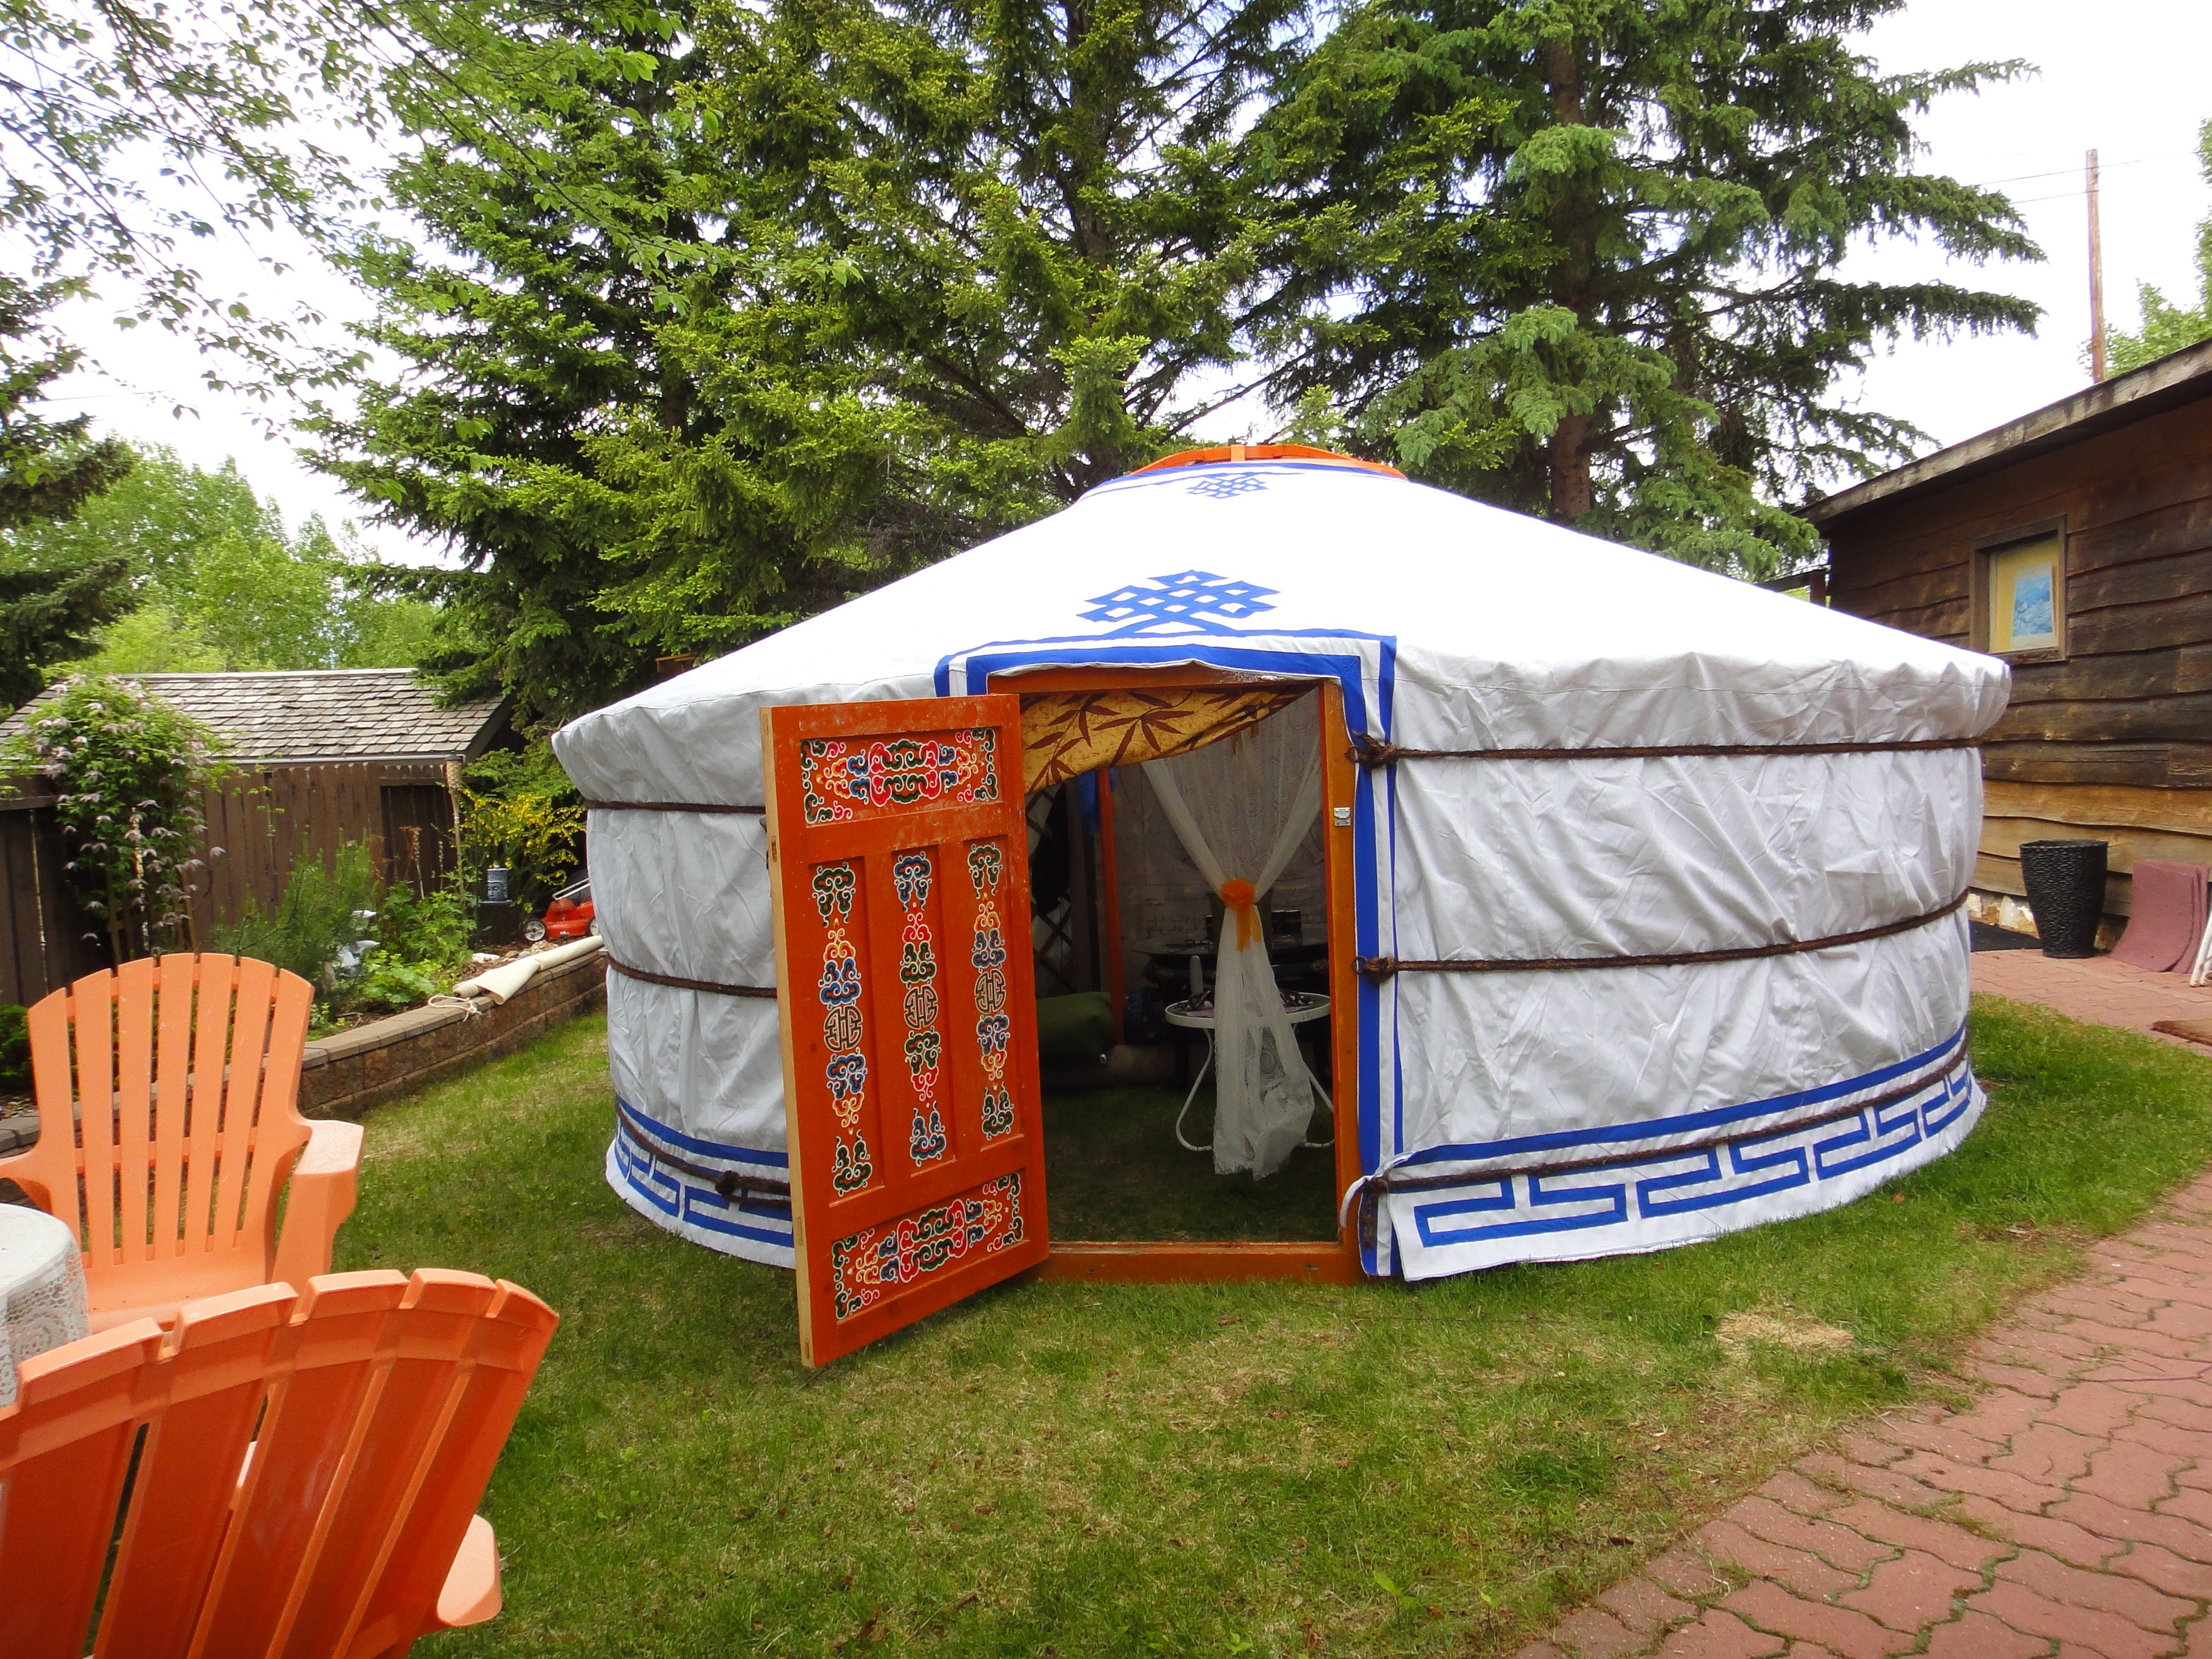 Yurt in a backyard at cottage